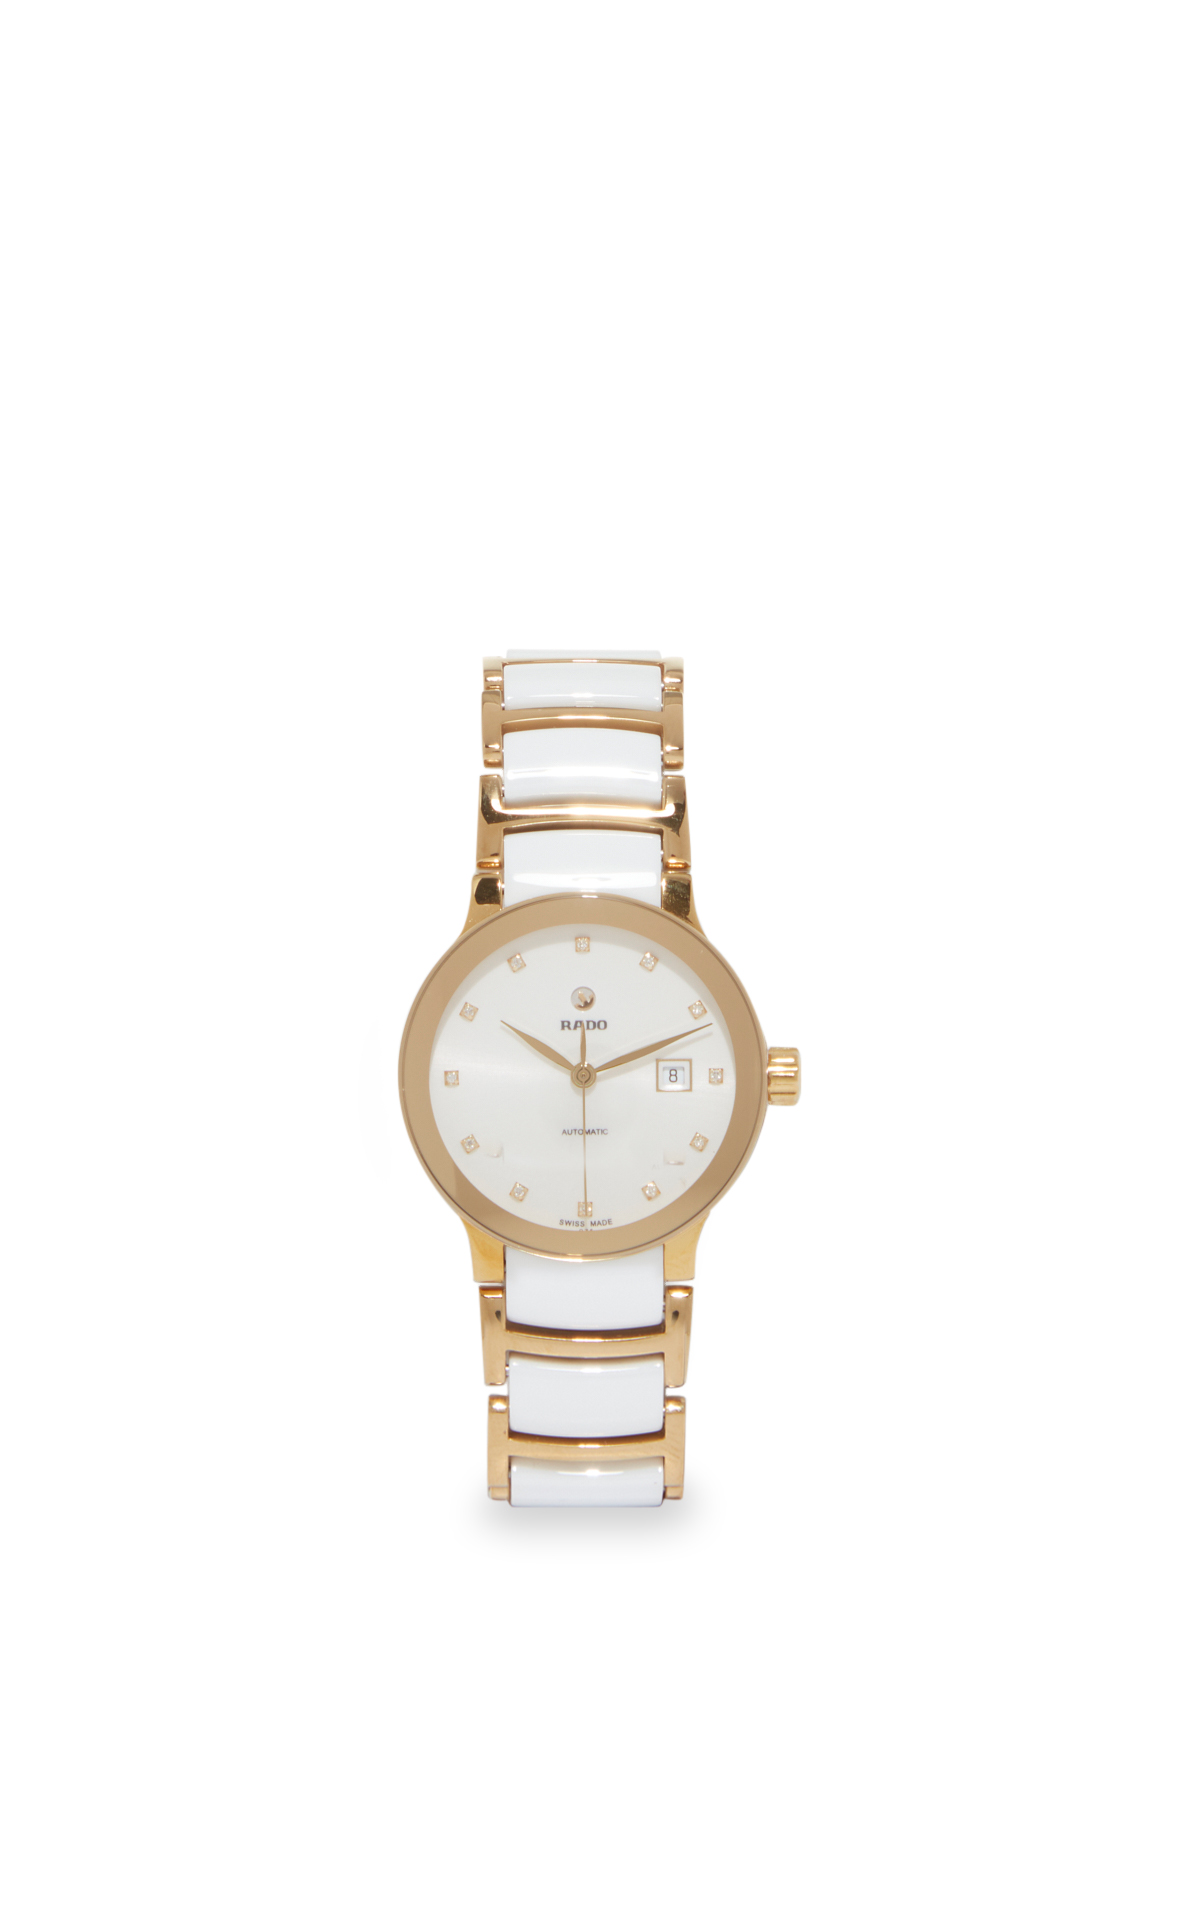 la vallée village RADO Centrix automatic white and gold watch